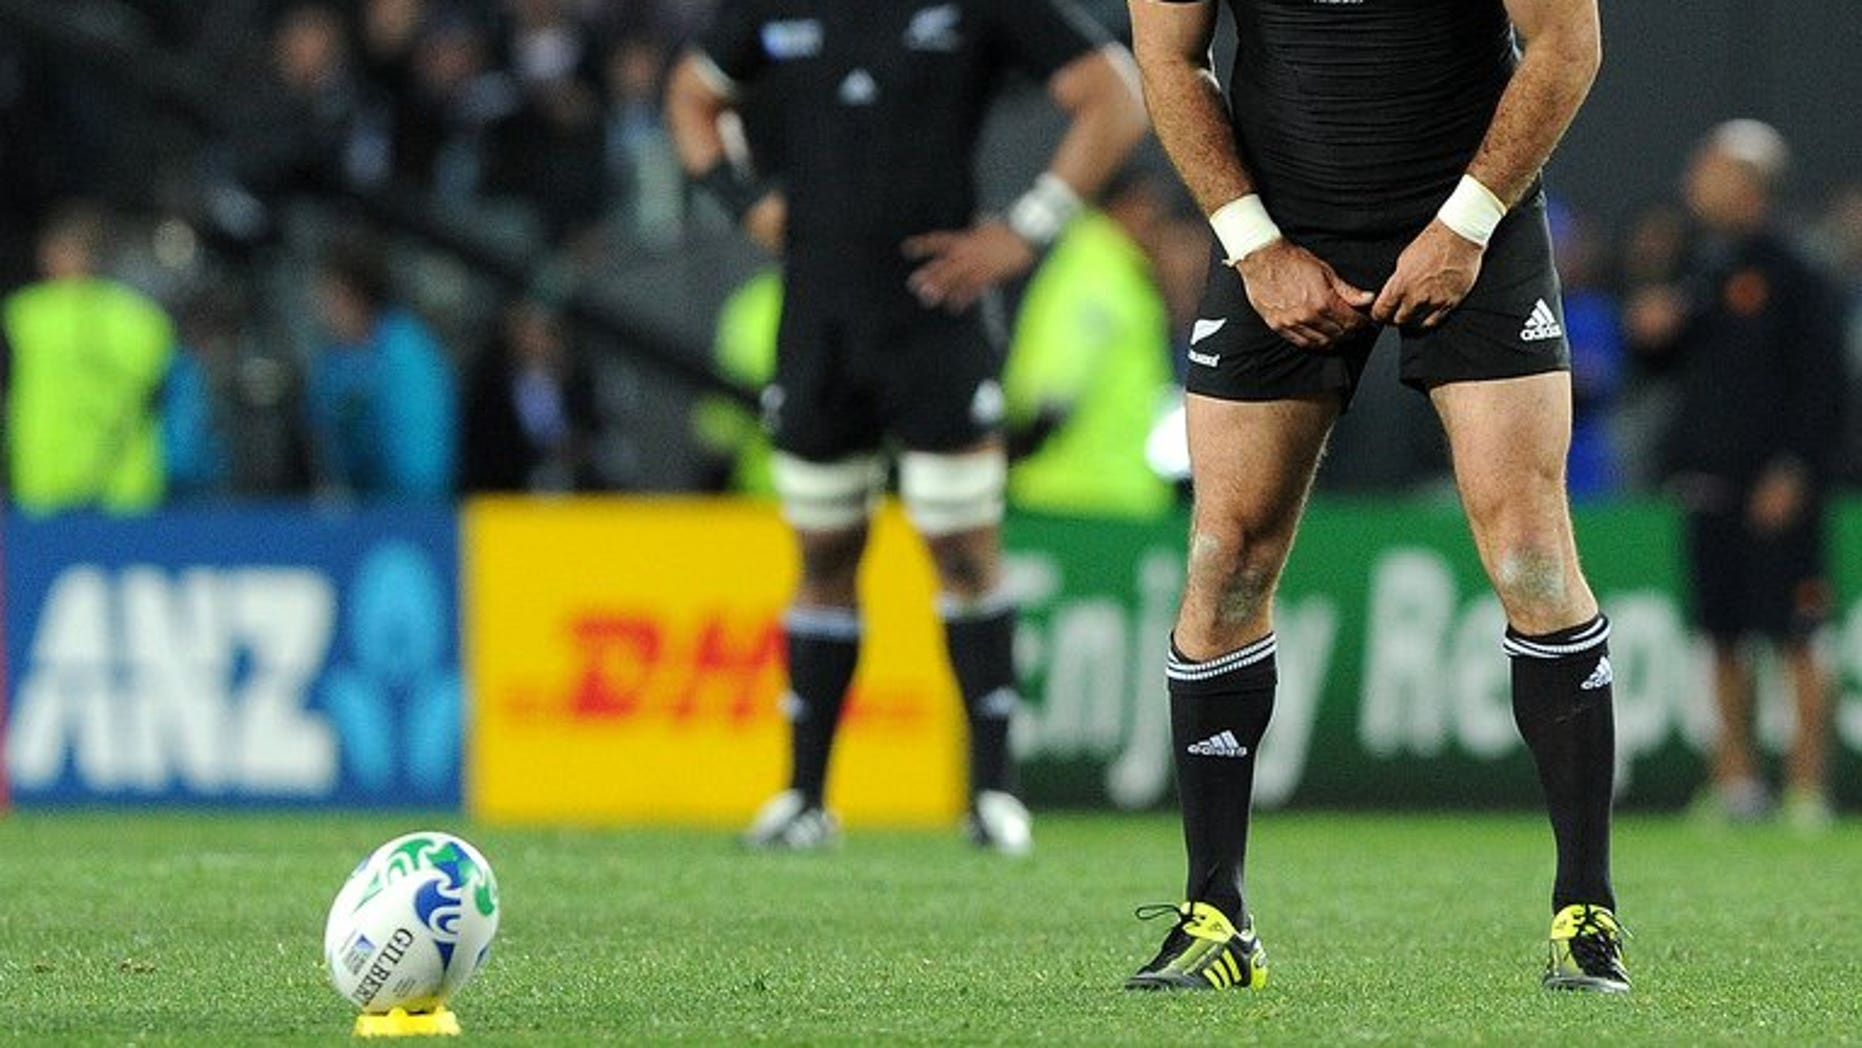 New Zealand All Blacks' Stephen Donald prepares to score the crucial penalty against France during their 2011 Rugby World Cup final match at Eden Park Stadium in Auckland, on October 23, 2011. Much-maligned Donald's unlikely role in N.Z.'s narrow win will be immortalised in a movie, according to reports.